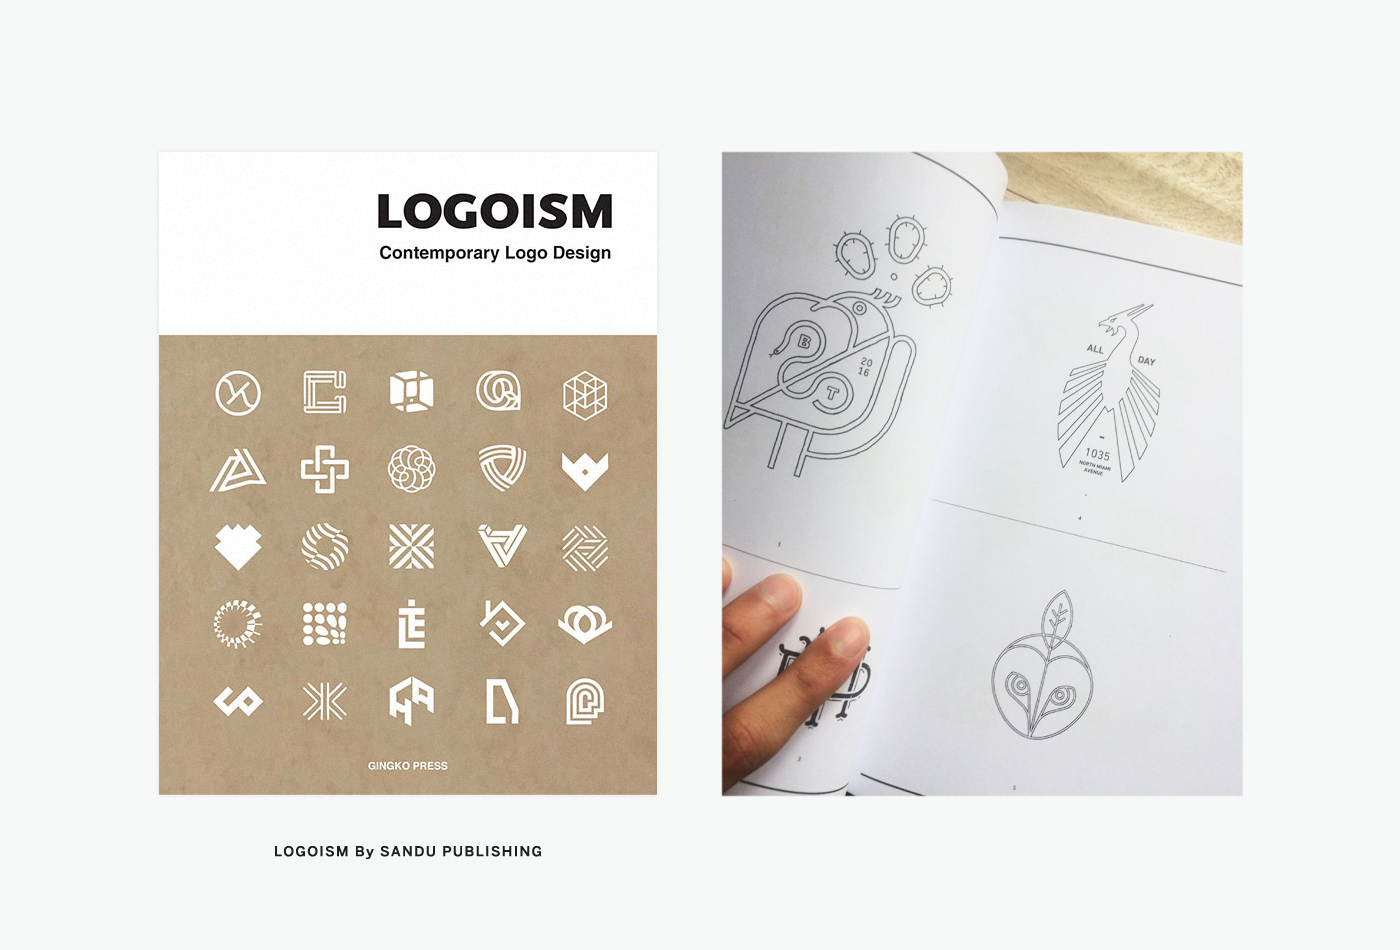 vacaliebres-logoism-sandu-publishing-logos-mrks-book-magazine-graphicdesign-logo